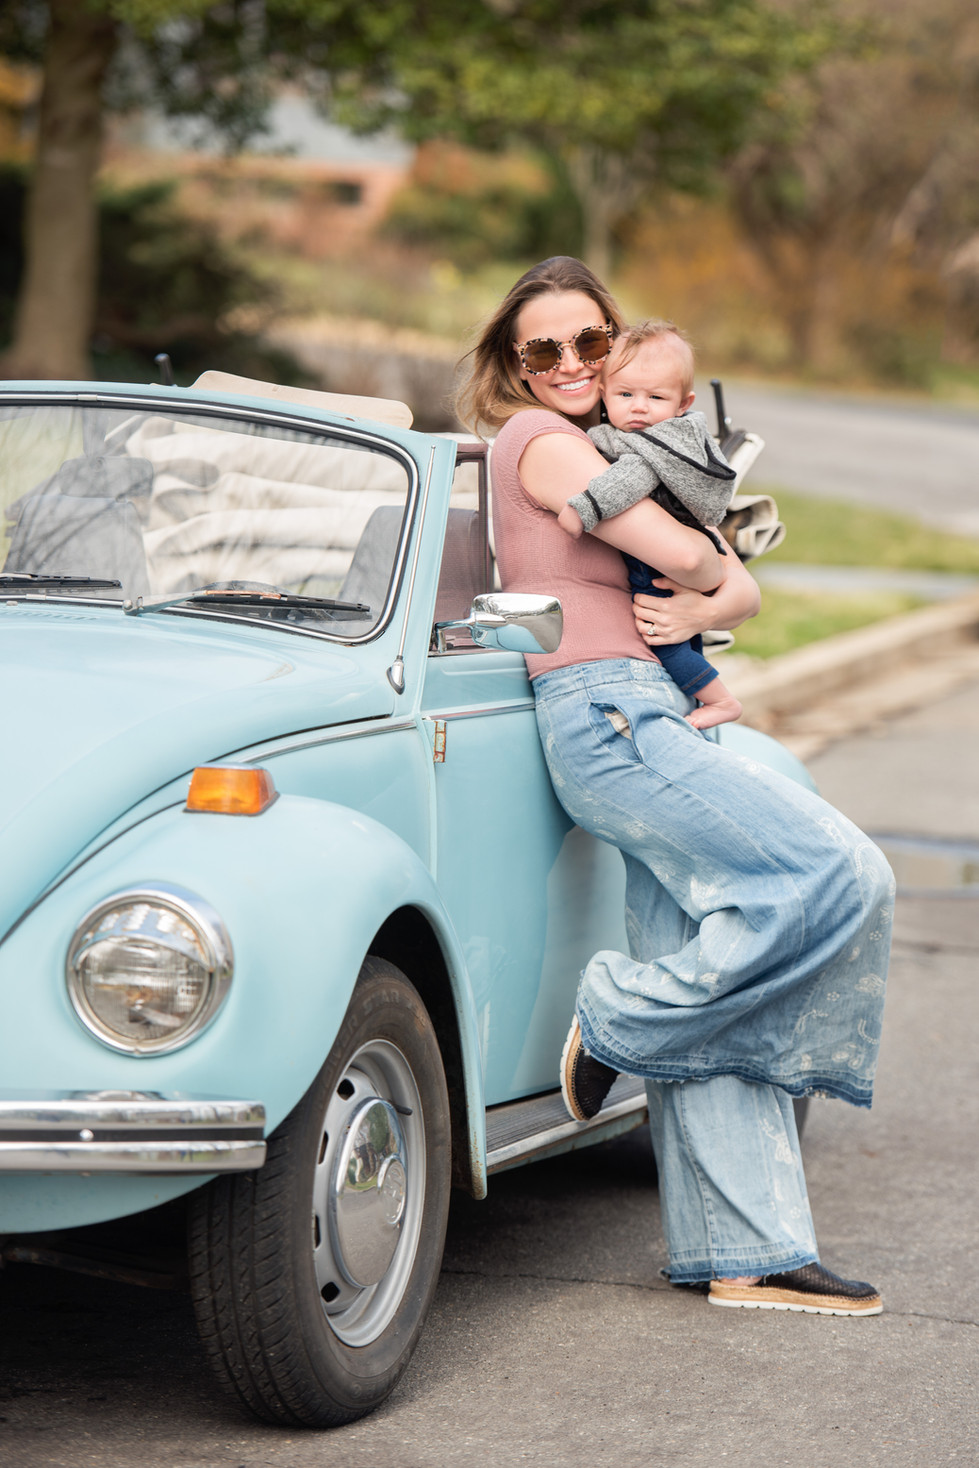 For Volkswagen Mother's Day Campaign